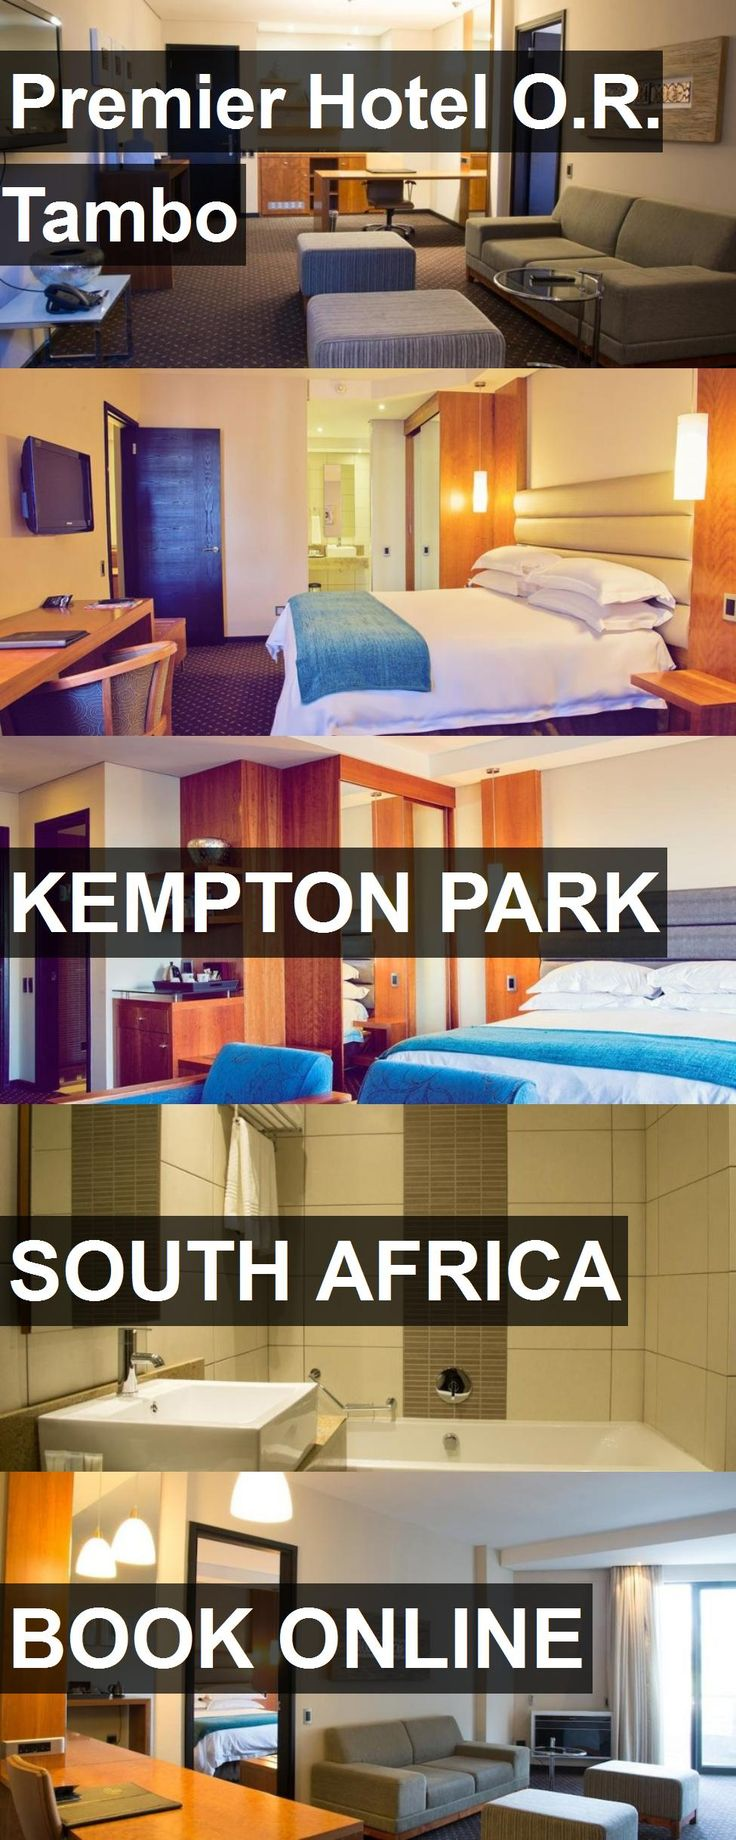 Hotel Premier Hotel O.R. Tambo in Kempton Park, South Africa. For more information, photos, reviews and best prices please follow the link. #SouthAfrica #KemptonPark #PremierHotelO.R.Tambo #hotel #travel #vacation